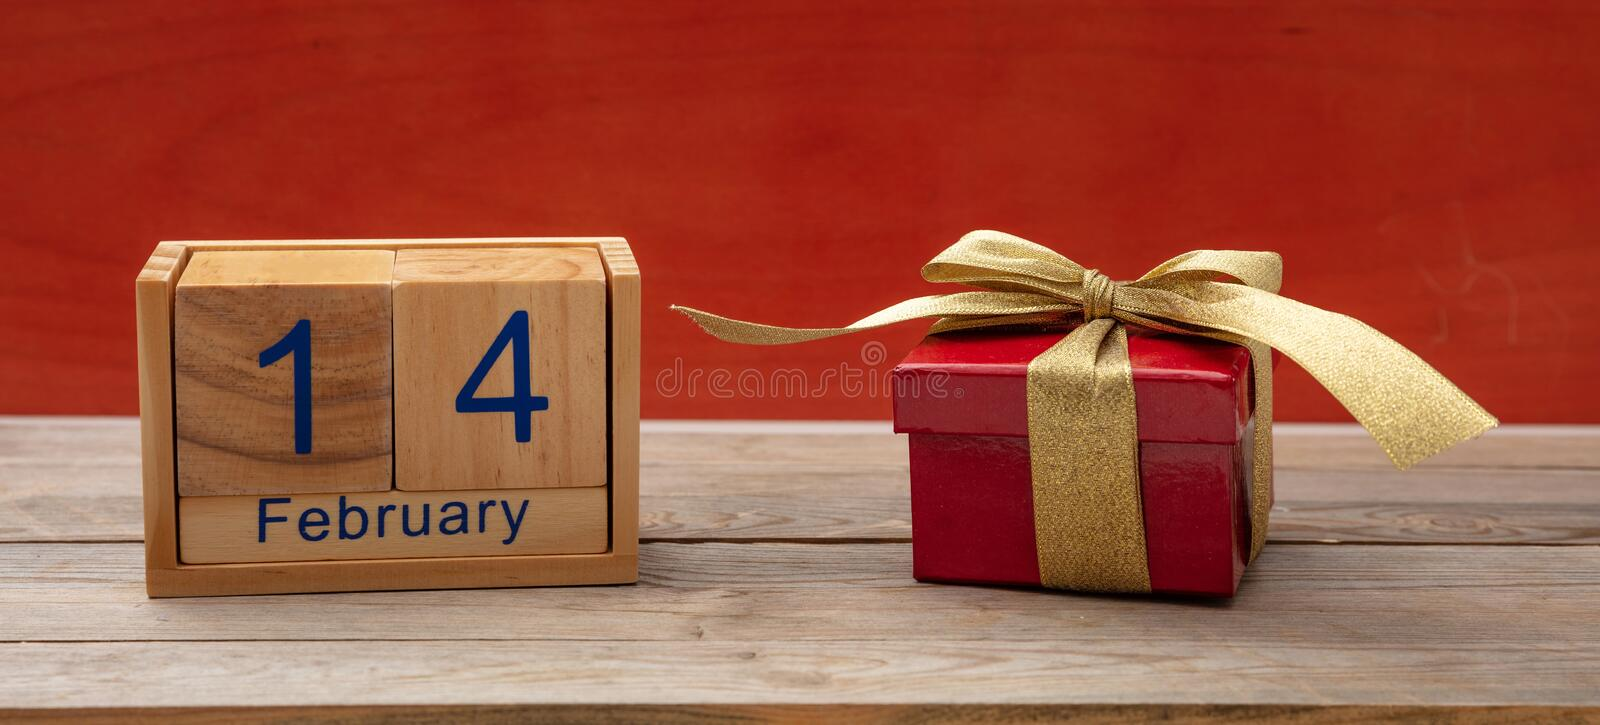 Valentines day. Calendar wooden cubes, 14 February and a gift box on wooden table, red wall royalty free stock photos